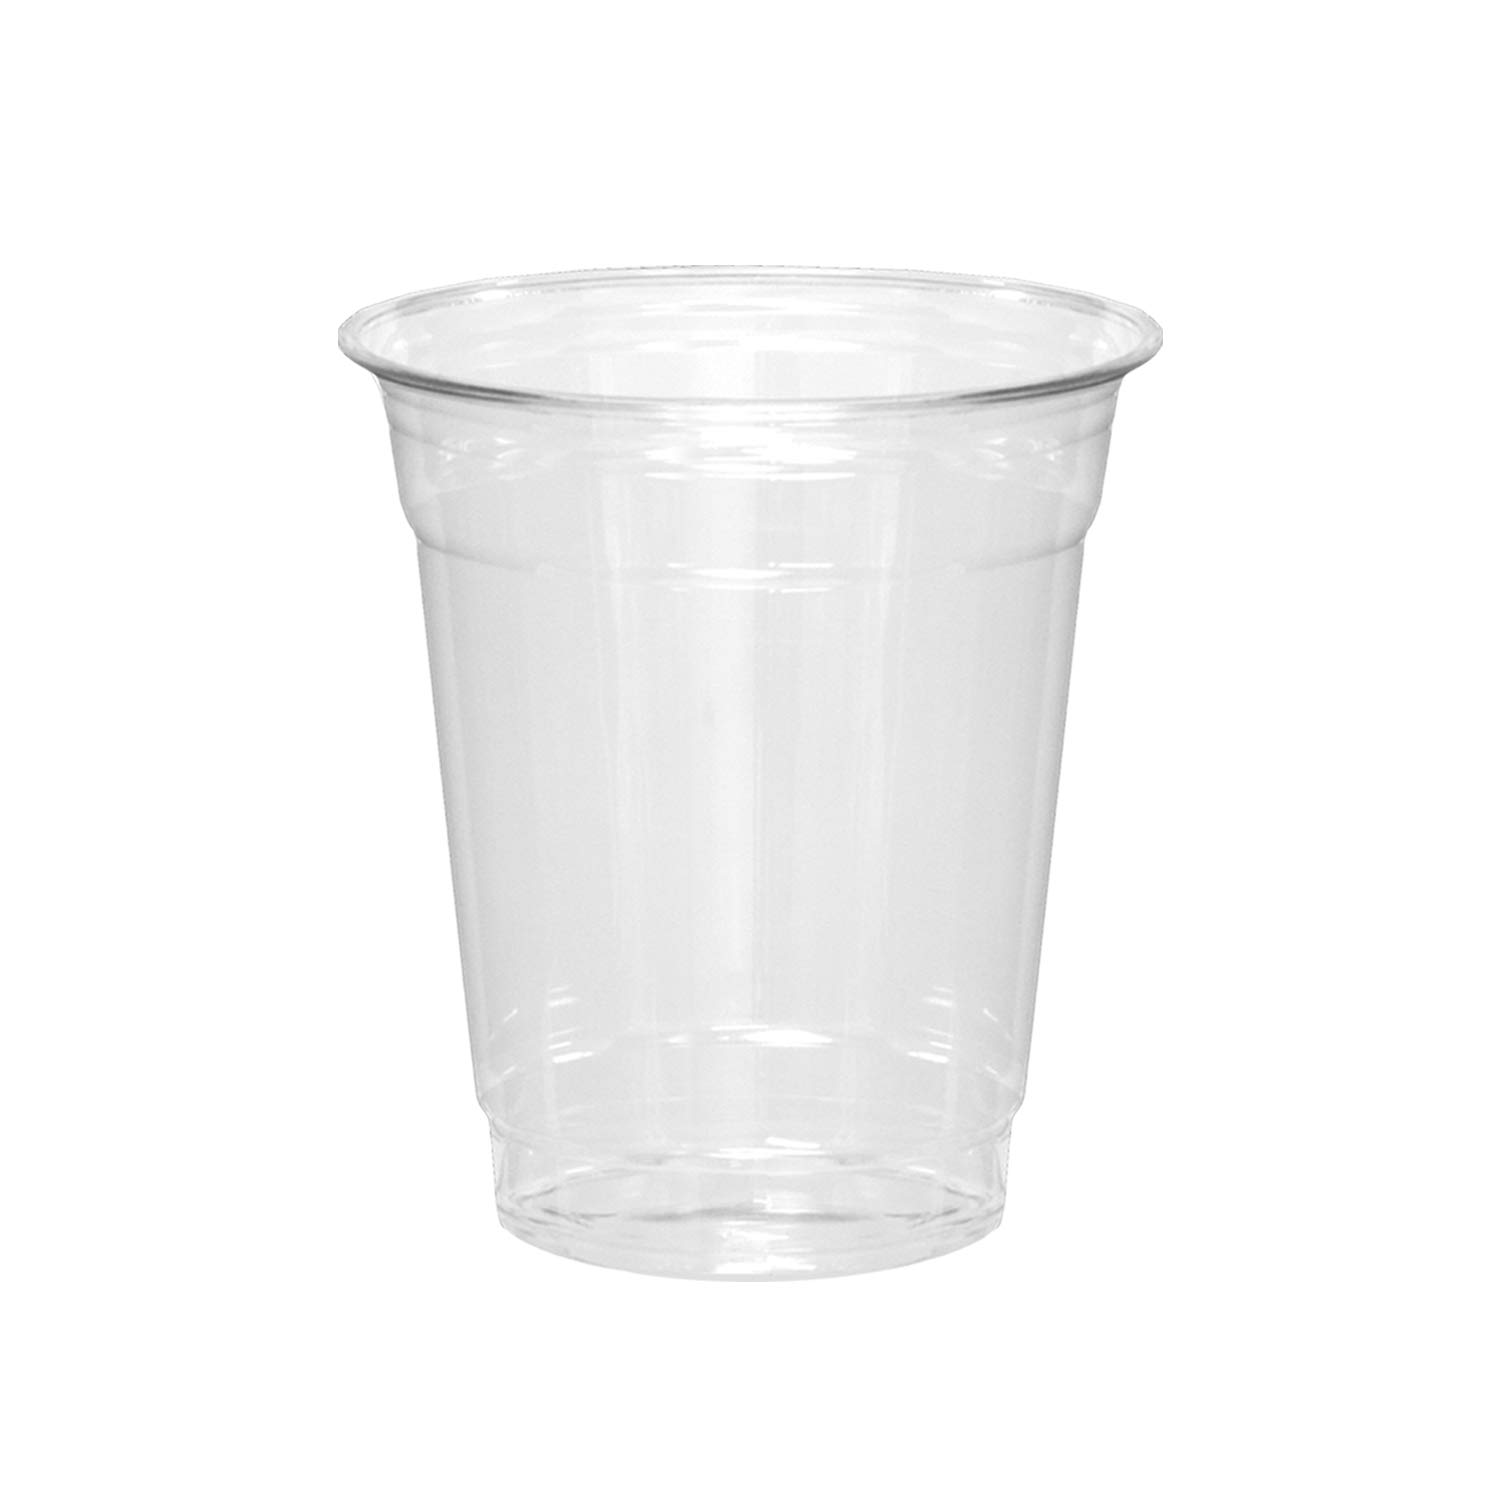 Party Essentials N161040 Soft Plastic Party Cups/Tumblers, 40 Ct, 16 oz, Clear